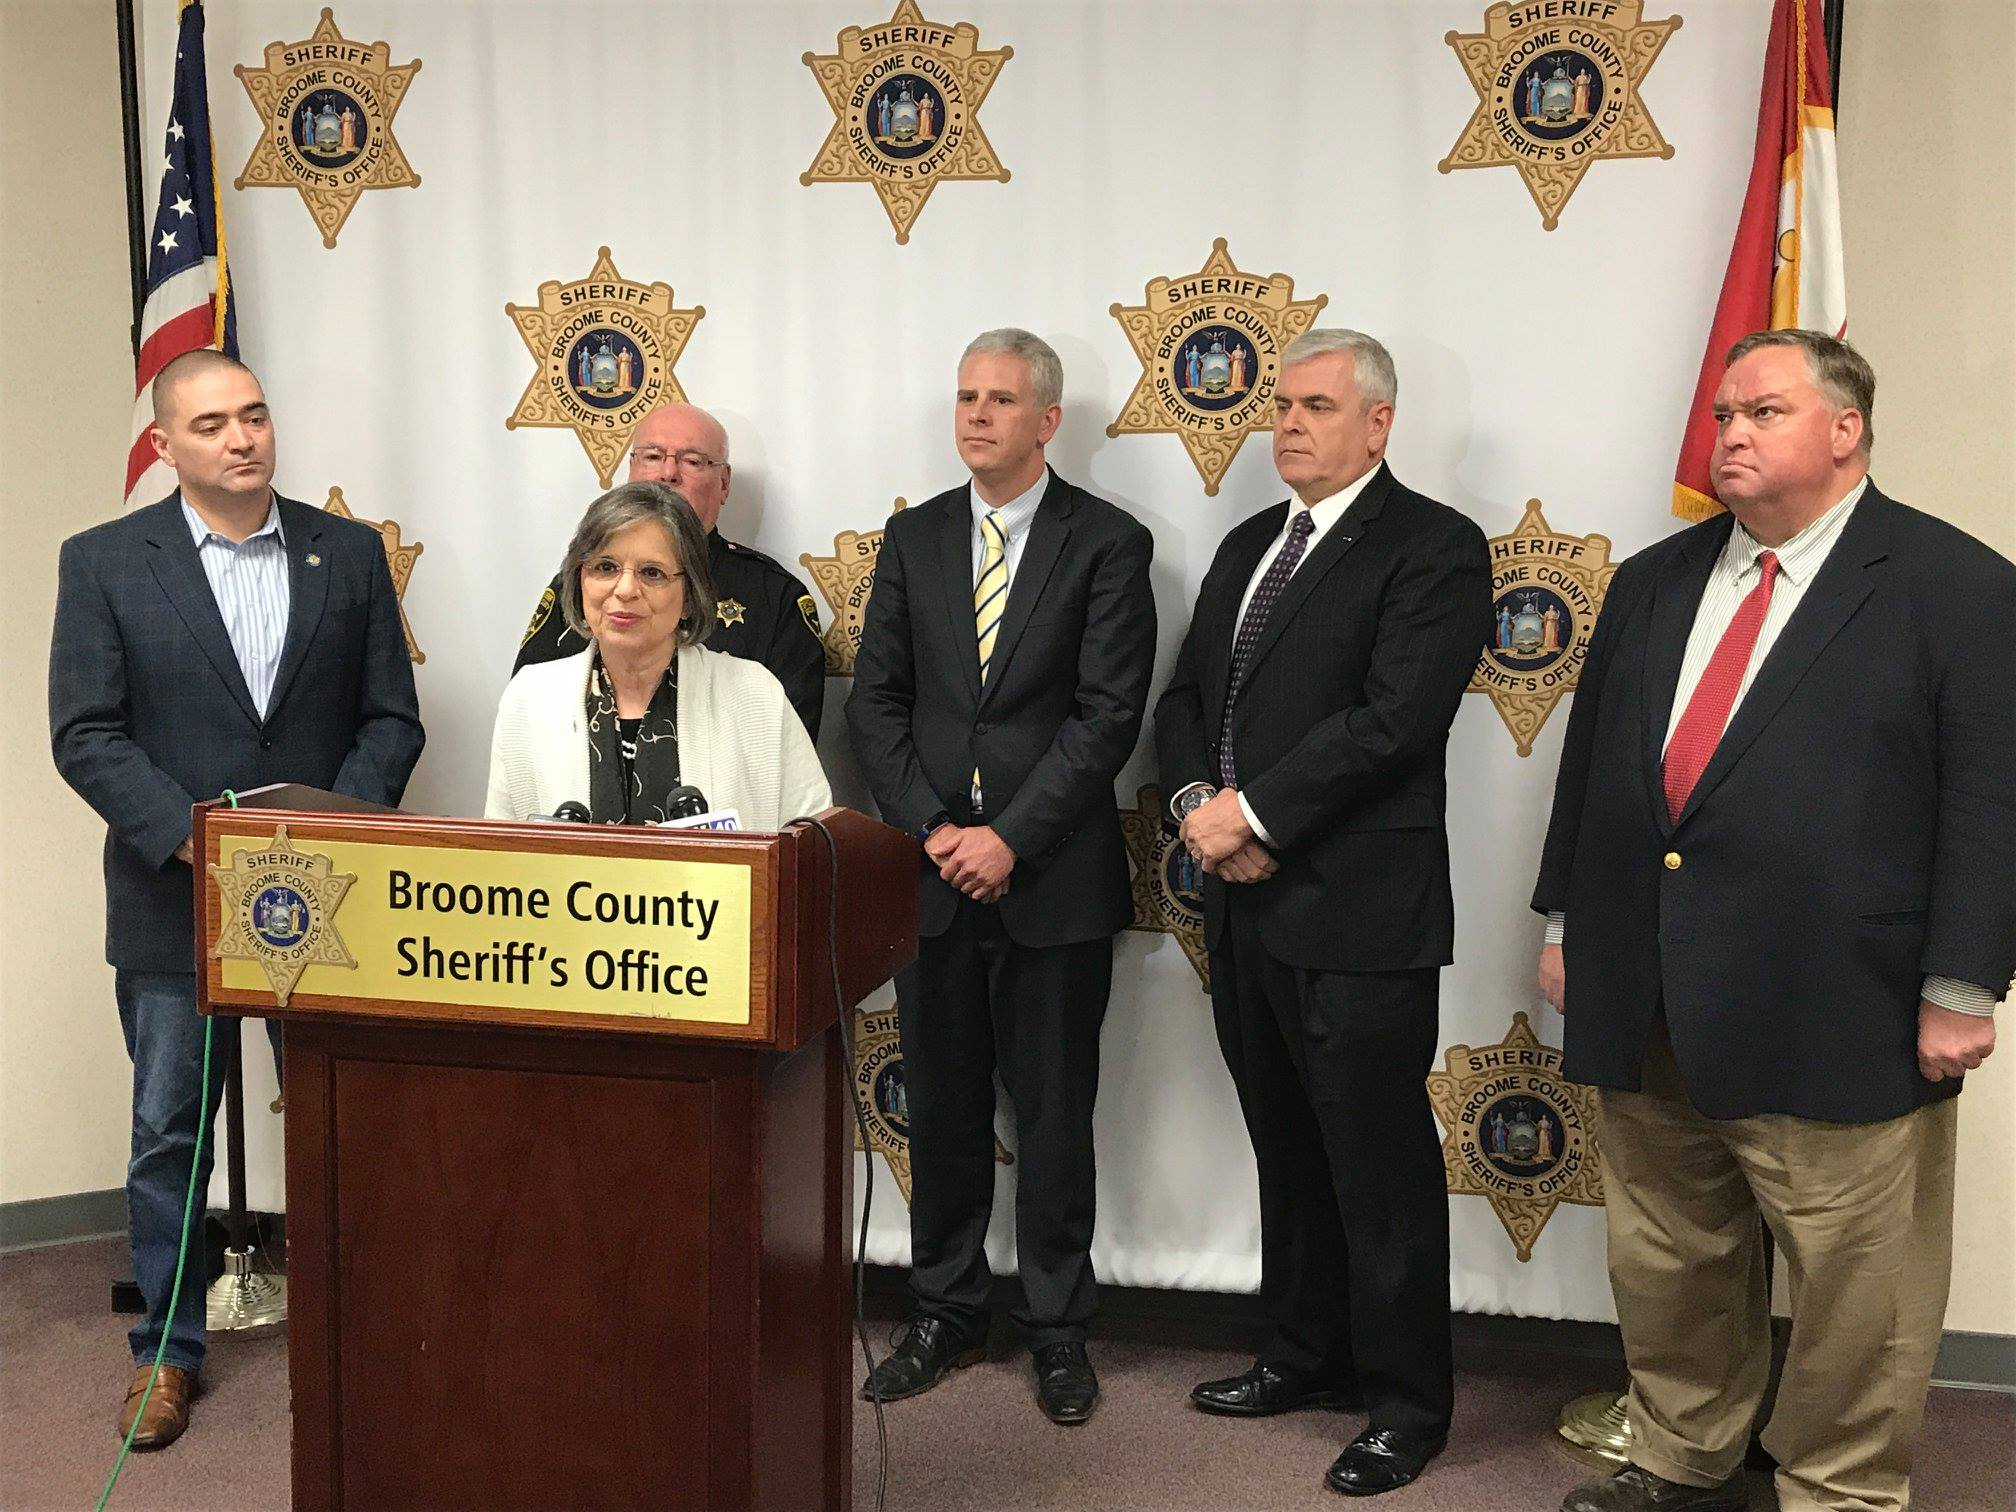 January 10, 2019 – Assemblywoman Lupardo joins local colleagues to announce details of her bill to allow central arraignments at the Broome County Correctional Facility, which was recently signed